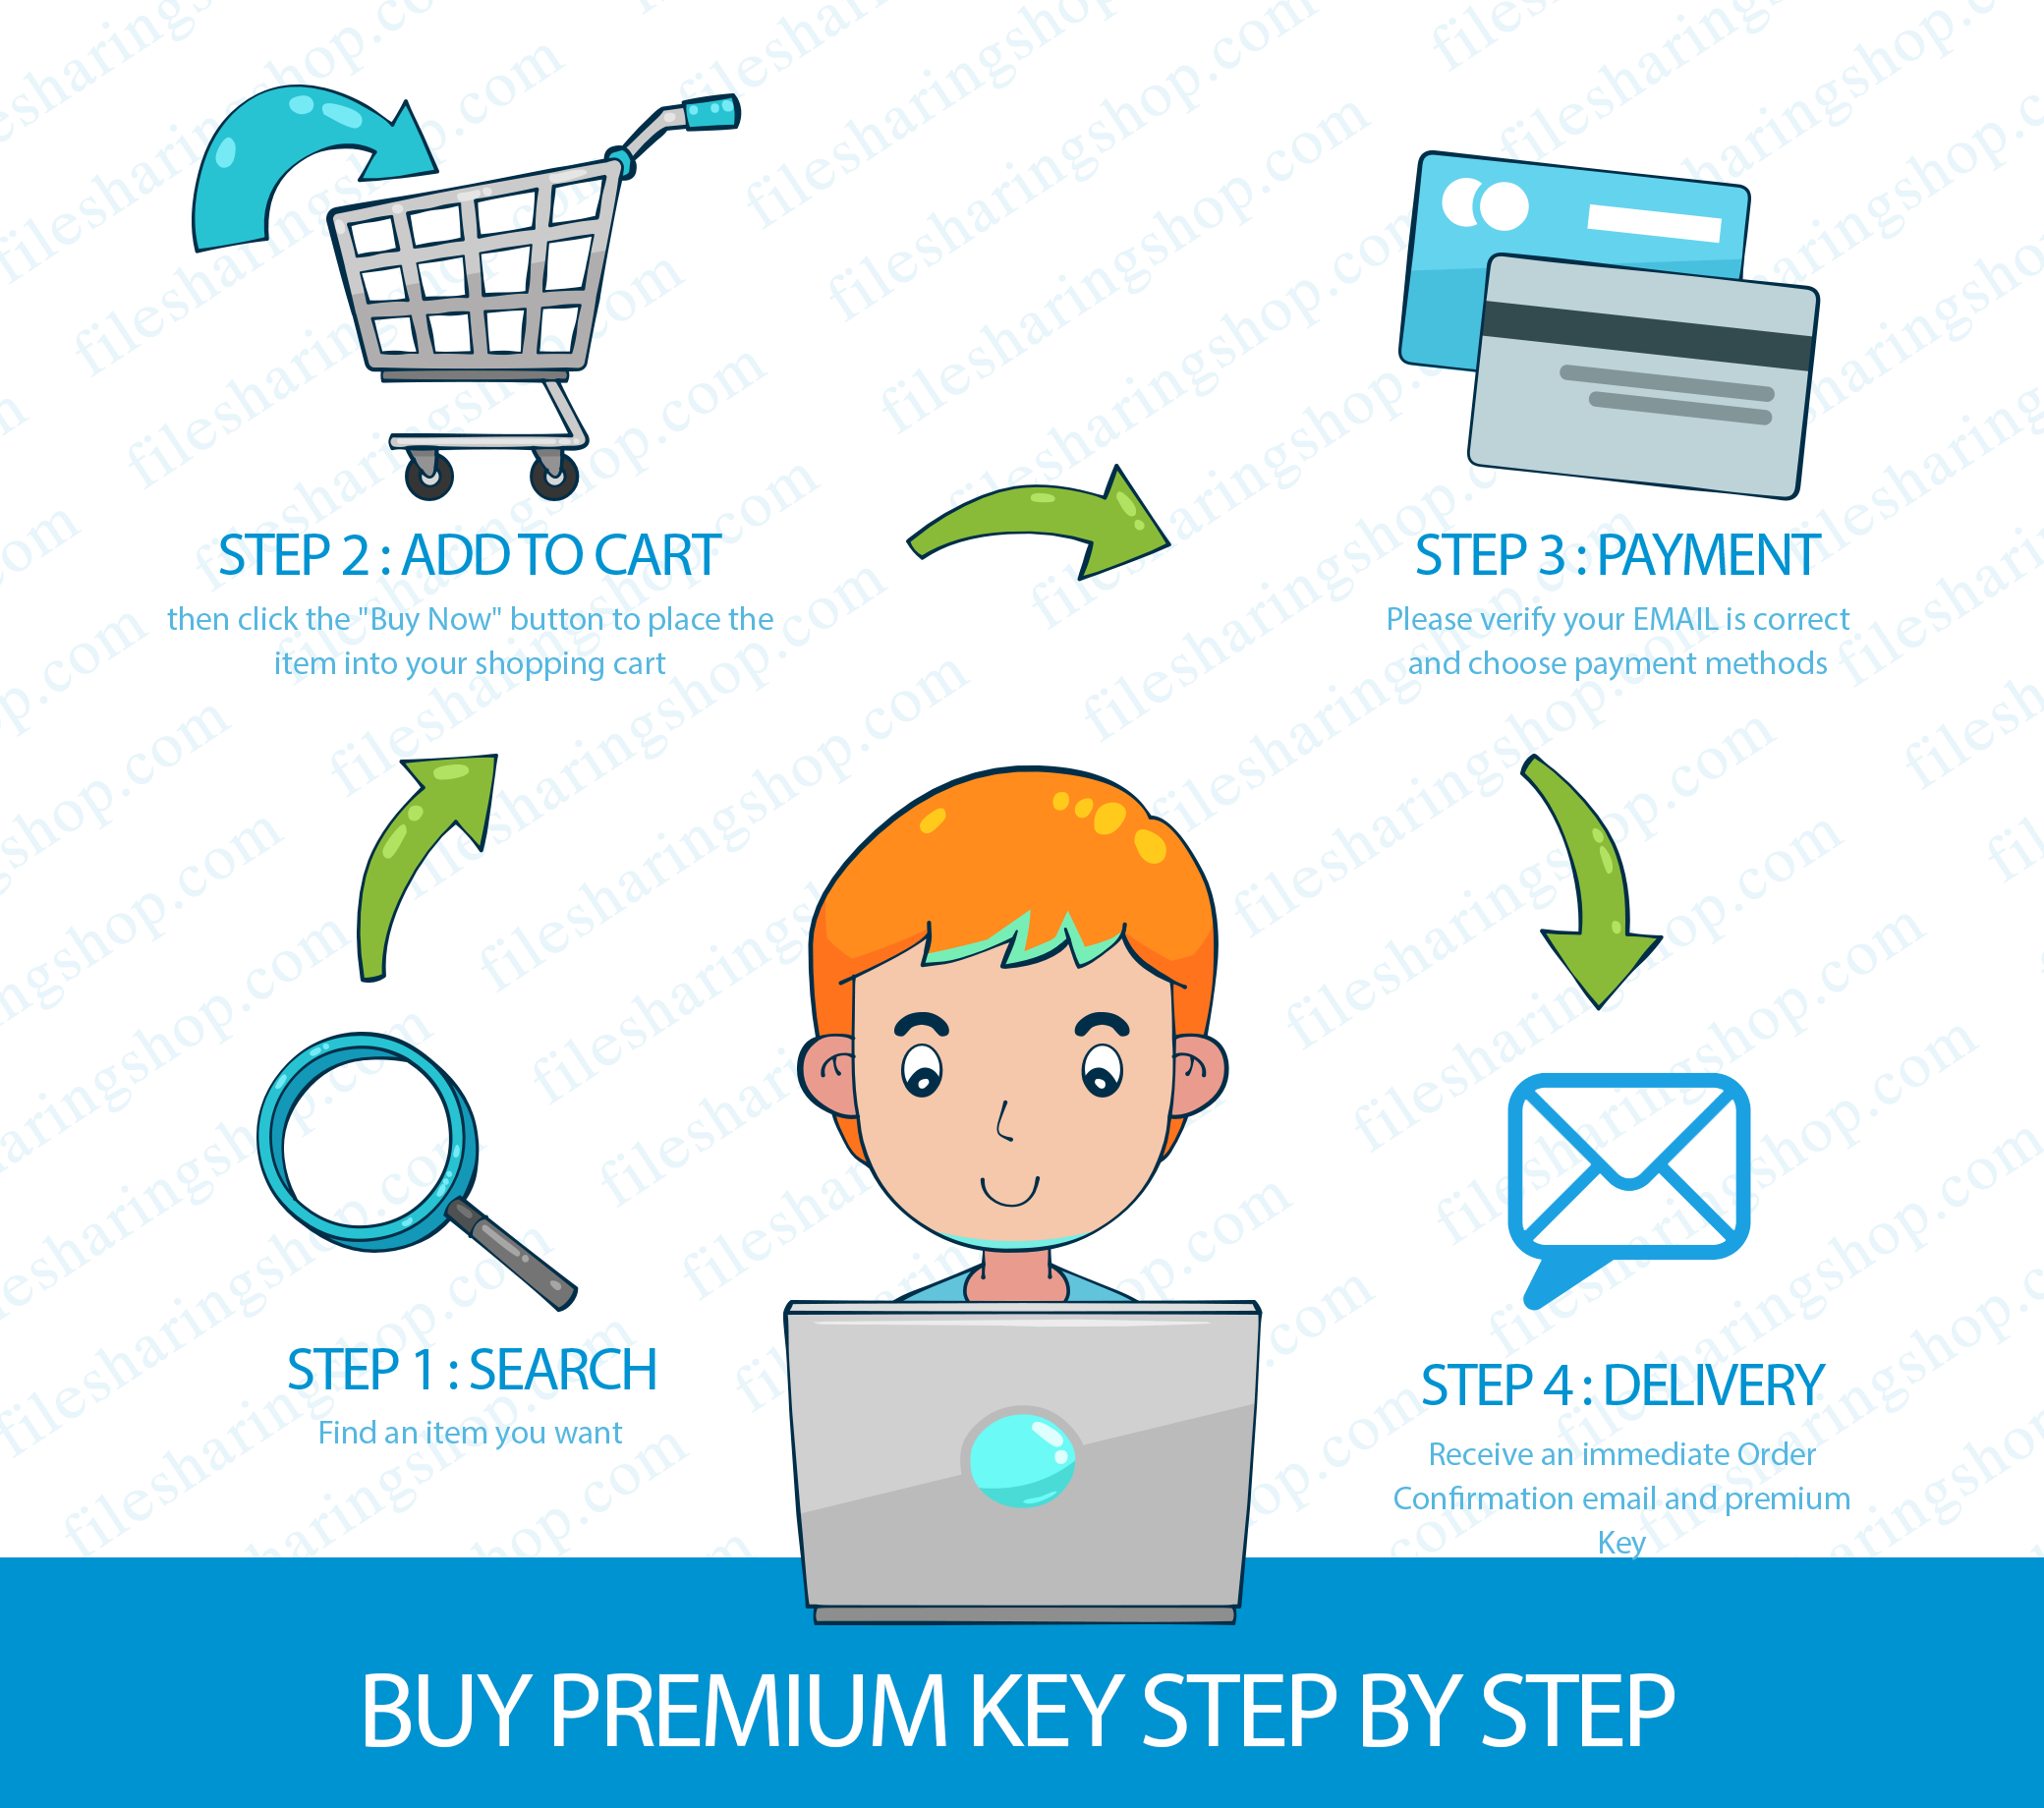 HOW TO BUY MEGA-DEBRID PREMIUM